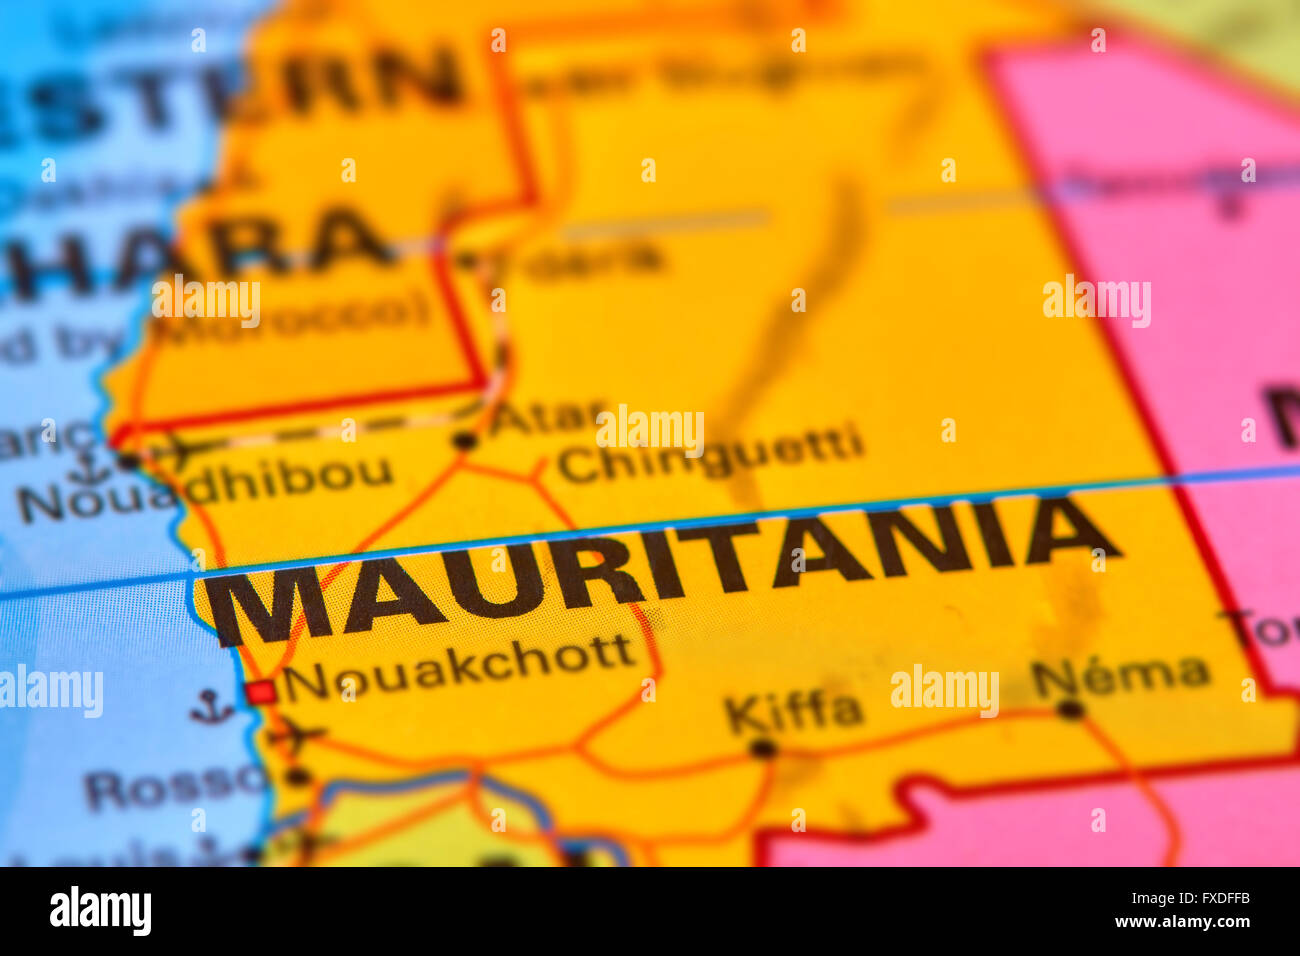 Mauritania Country in Africa on the World Map - Stock Image